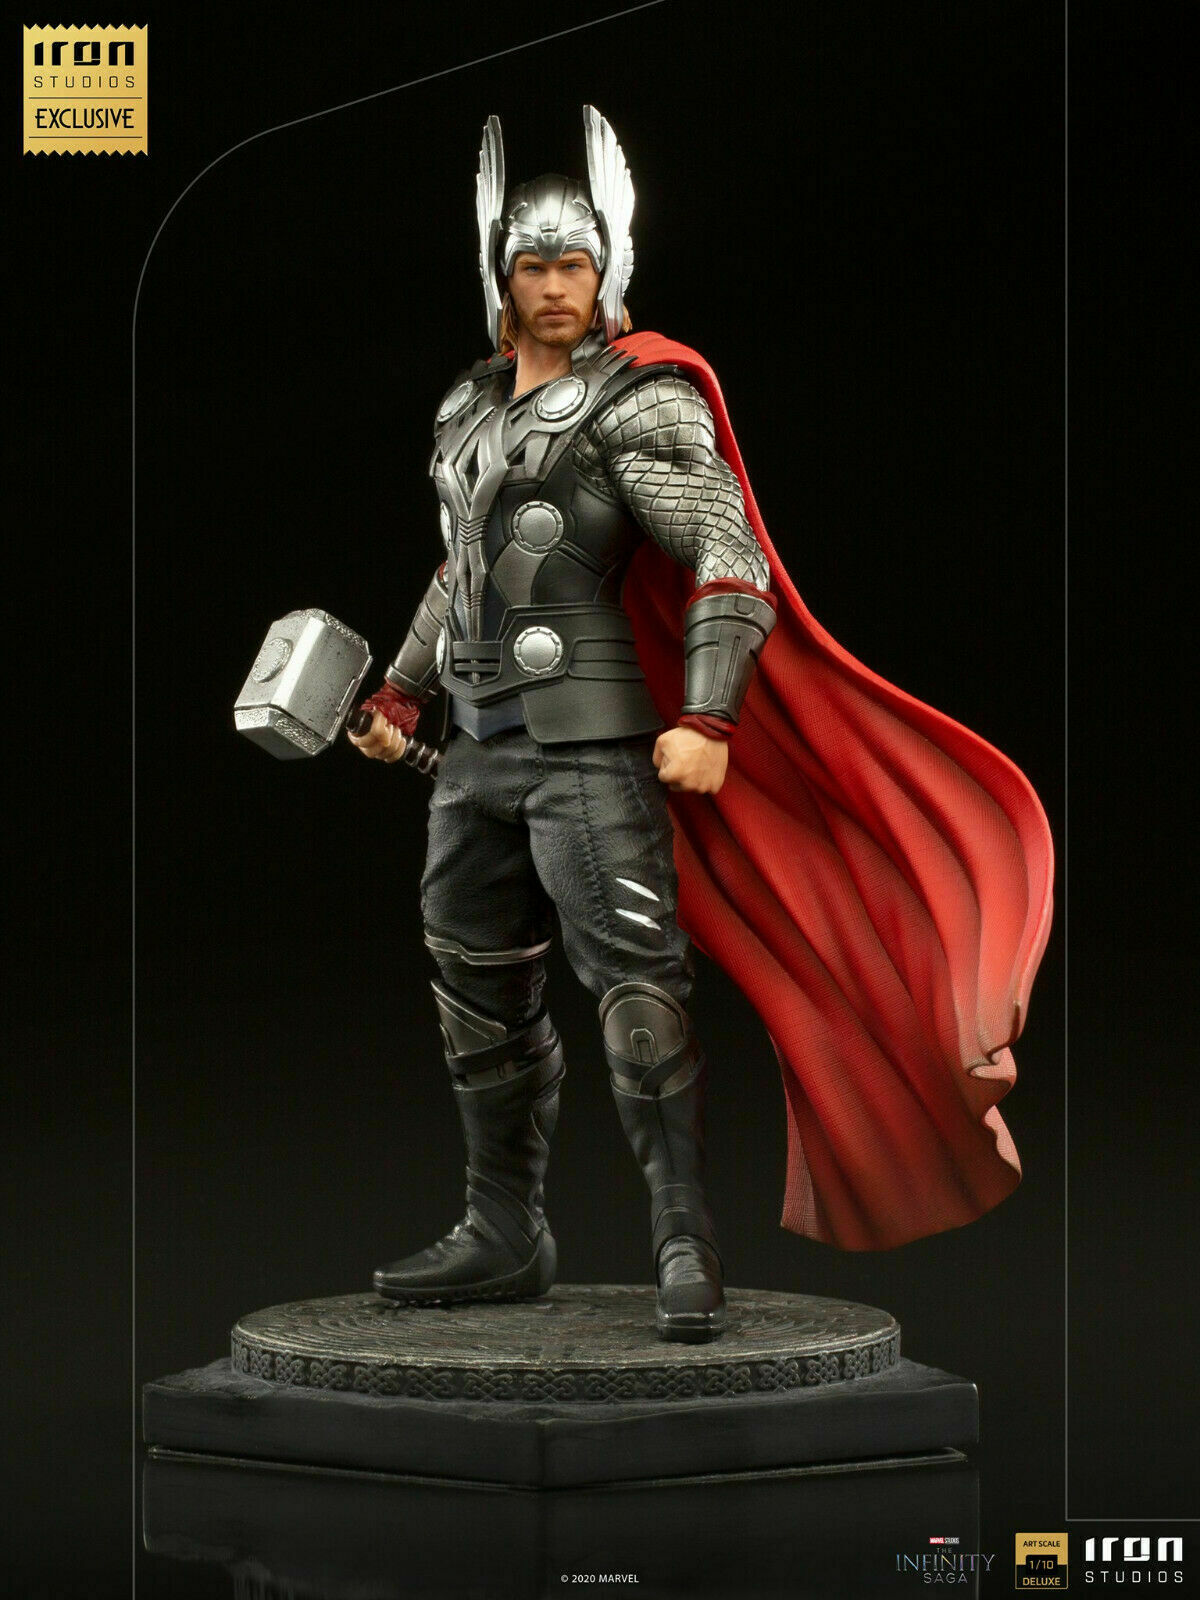 Iron Studios Thor Deluxe Art Scale 1/10 - Infinity Saga - EXCLUSIVE CCXP 2020 on eBay thumbnail